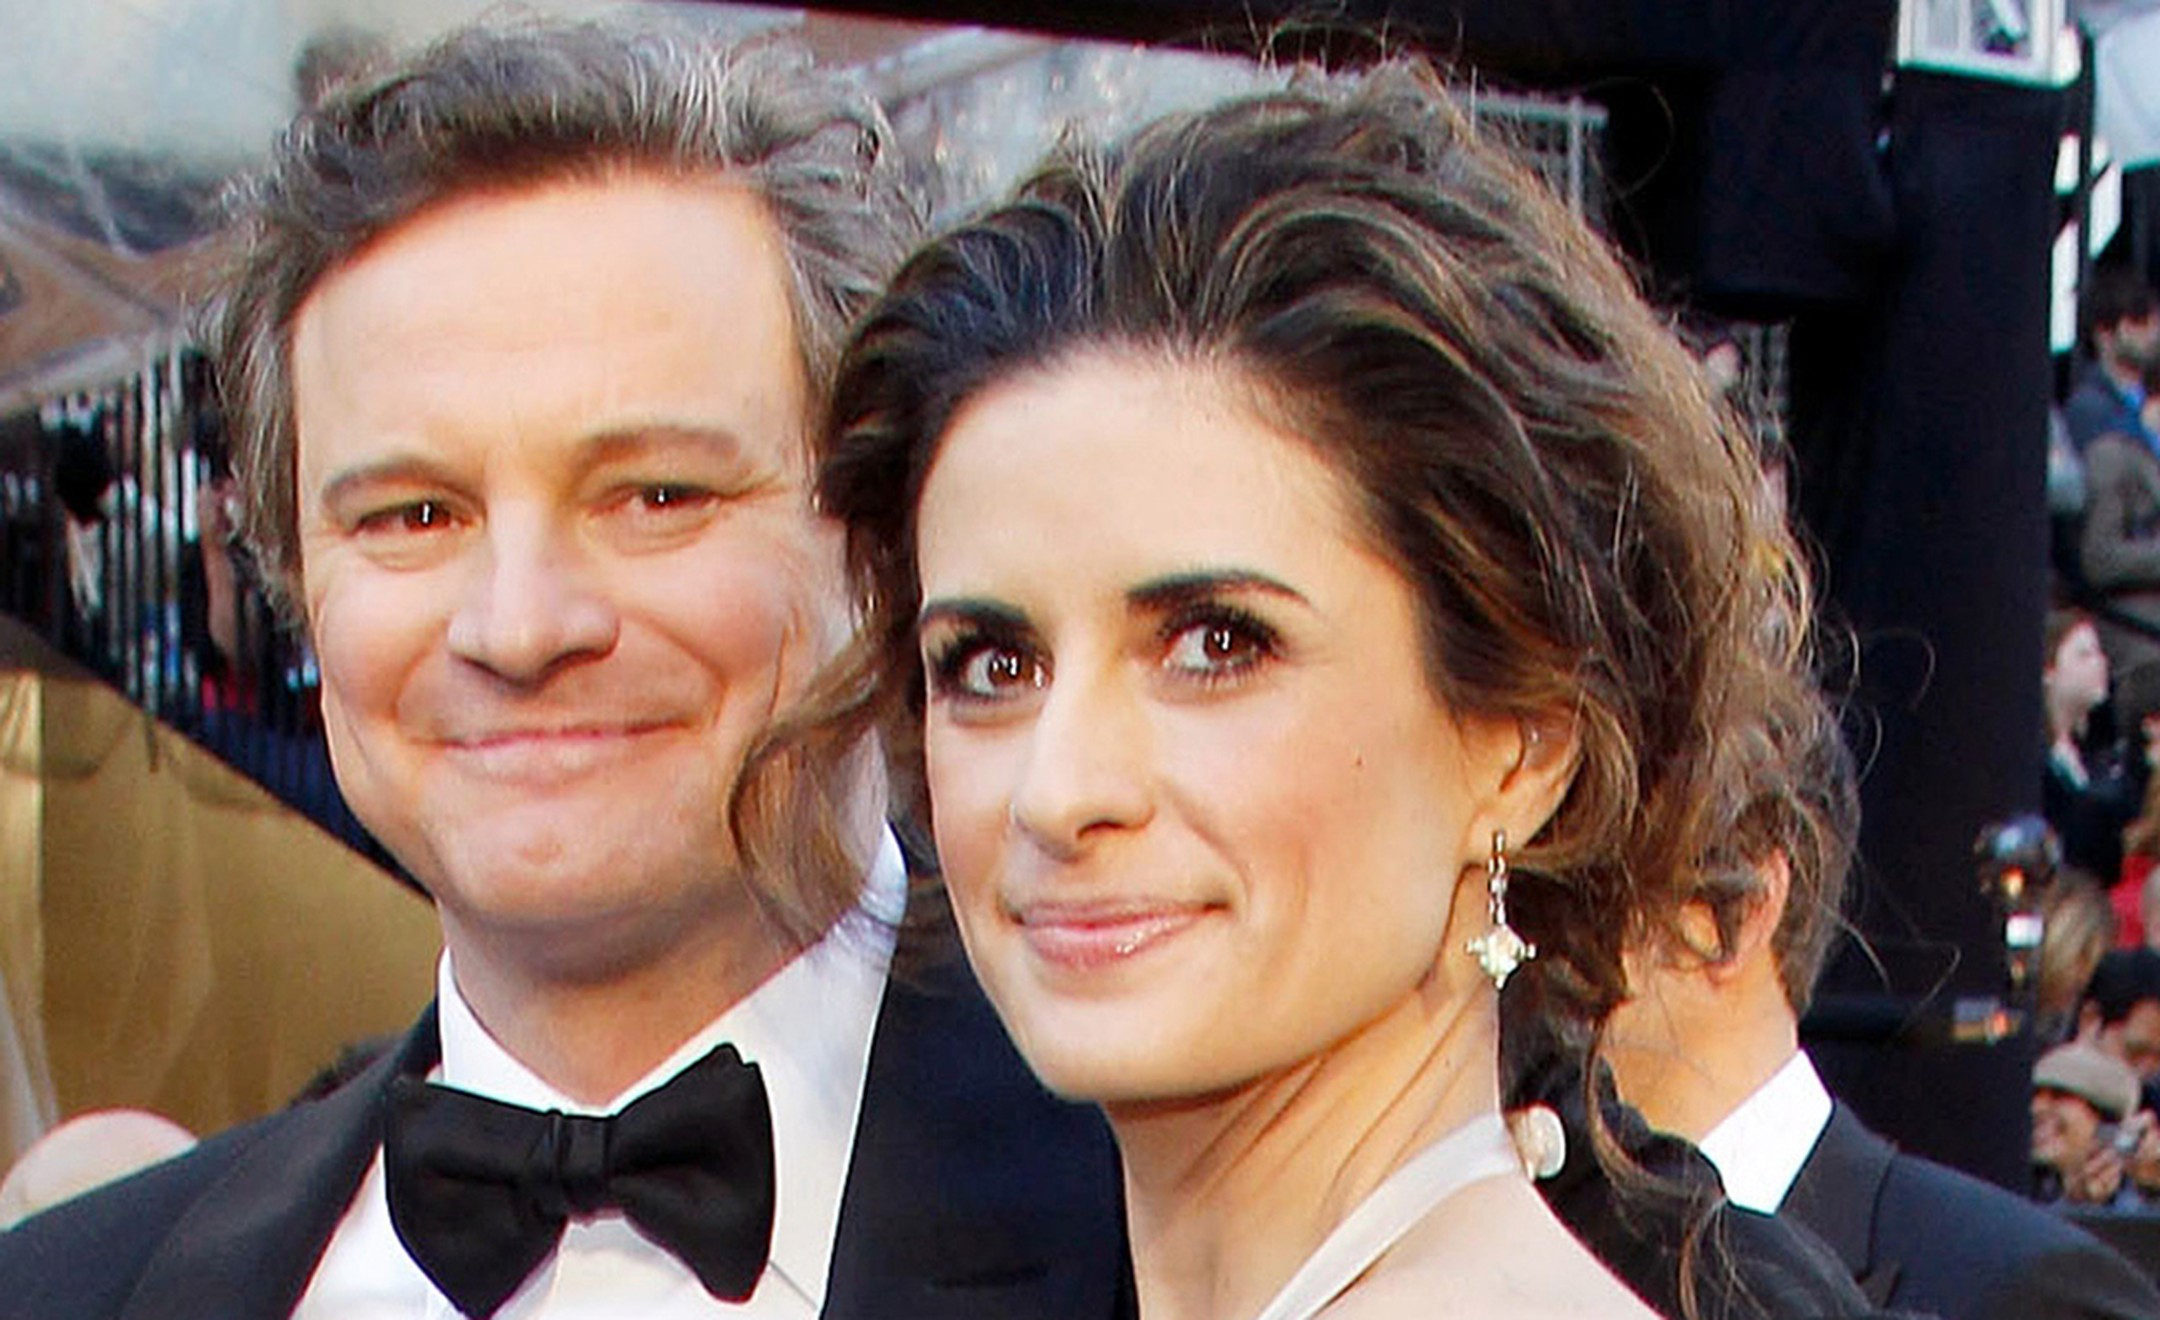 The first Fairtrade gold jewellery is to be seen on the lobes of Livia Firth (née Giuggioli), eco-entrepreneur and wife of Colin Firth. Livia chose Fairtrade and Fairmined gold as she steps out onto the red carpet at the Academy Awards accompany...